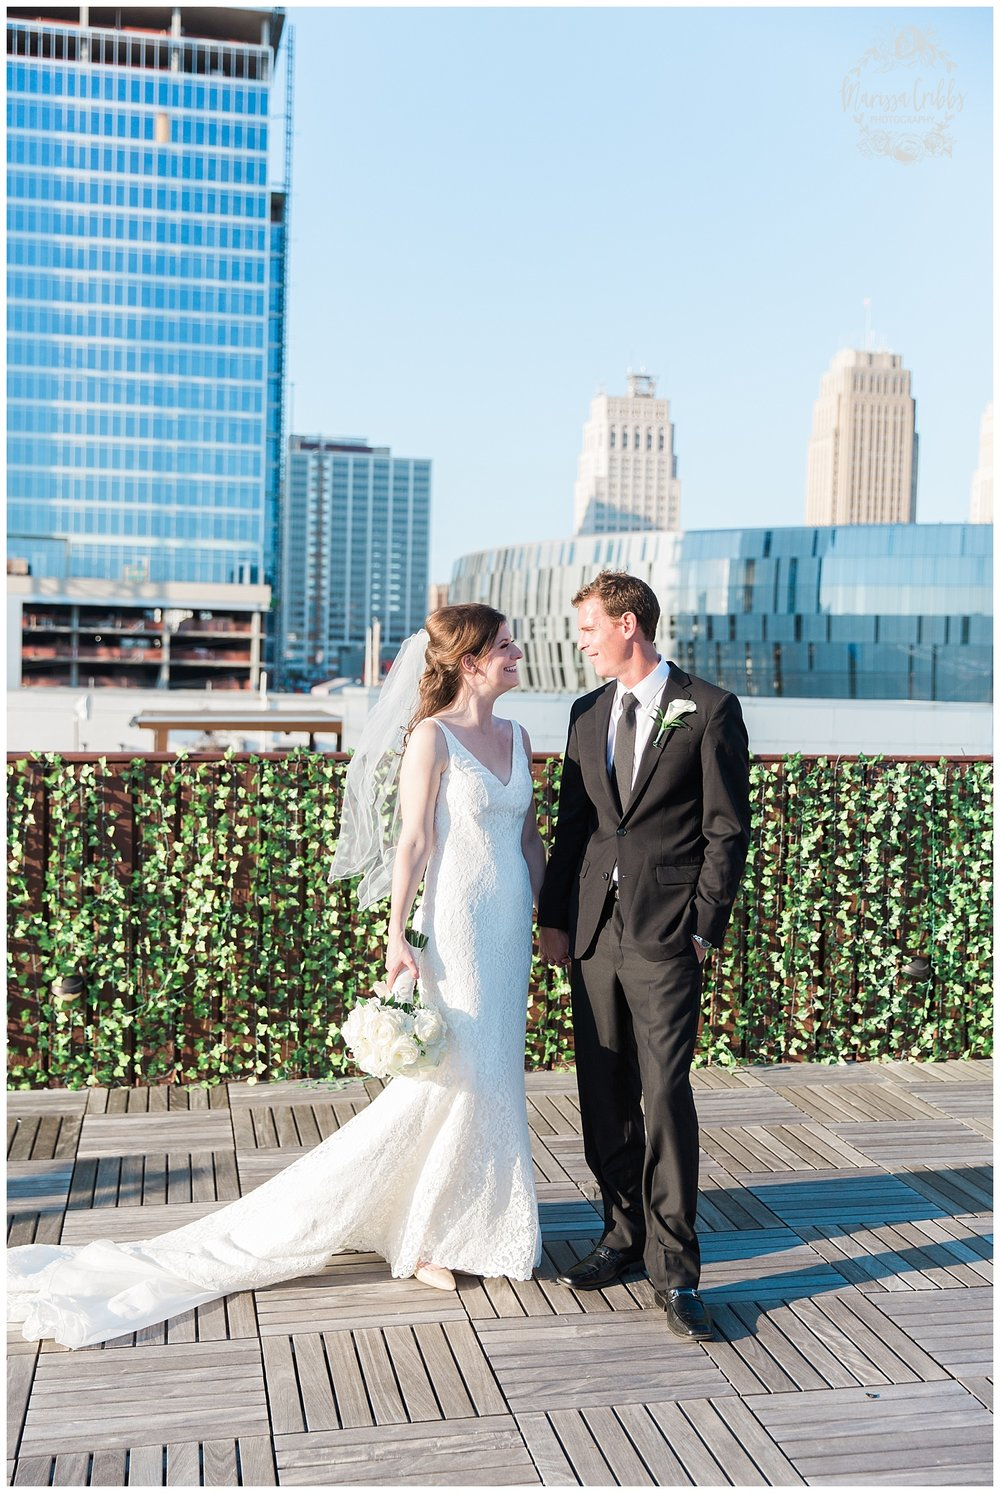 TERRACE ON GRAND WEDDING | MEGHAN & DAVYD | MARISSA CRIBBS PHOTOGRAPHY | CELEEBRATIONS OF LOVE_2976.jpg